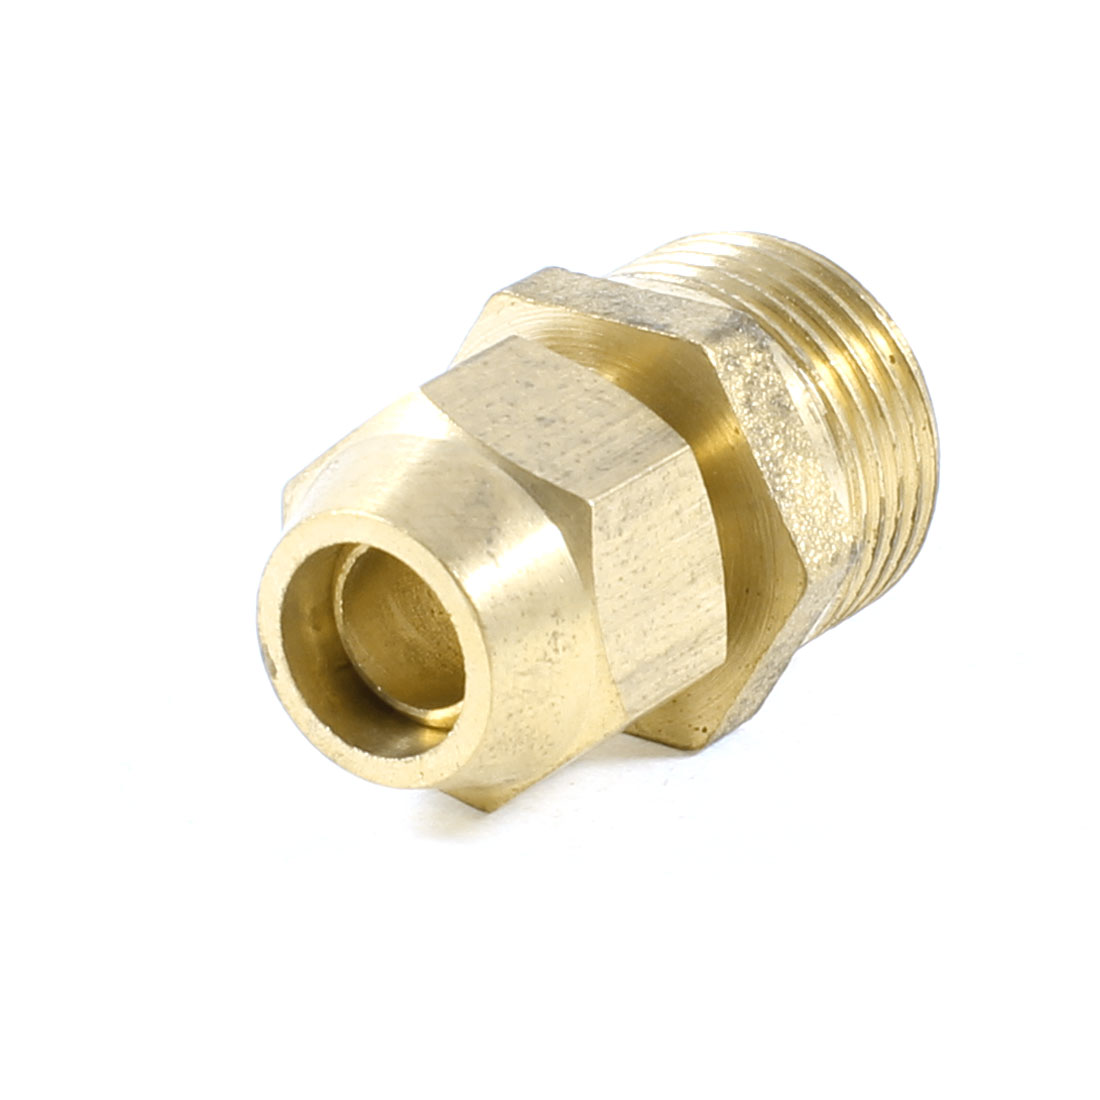 "8mm x 3/8"" PT Male Threaded Metal Adapter Hose Quick Joint Connector Gold Tone"